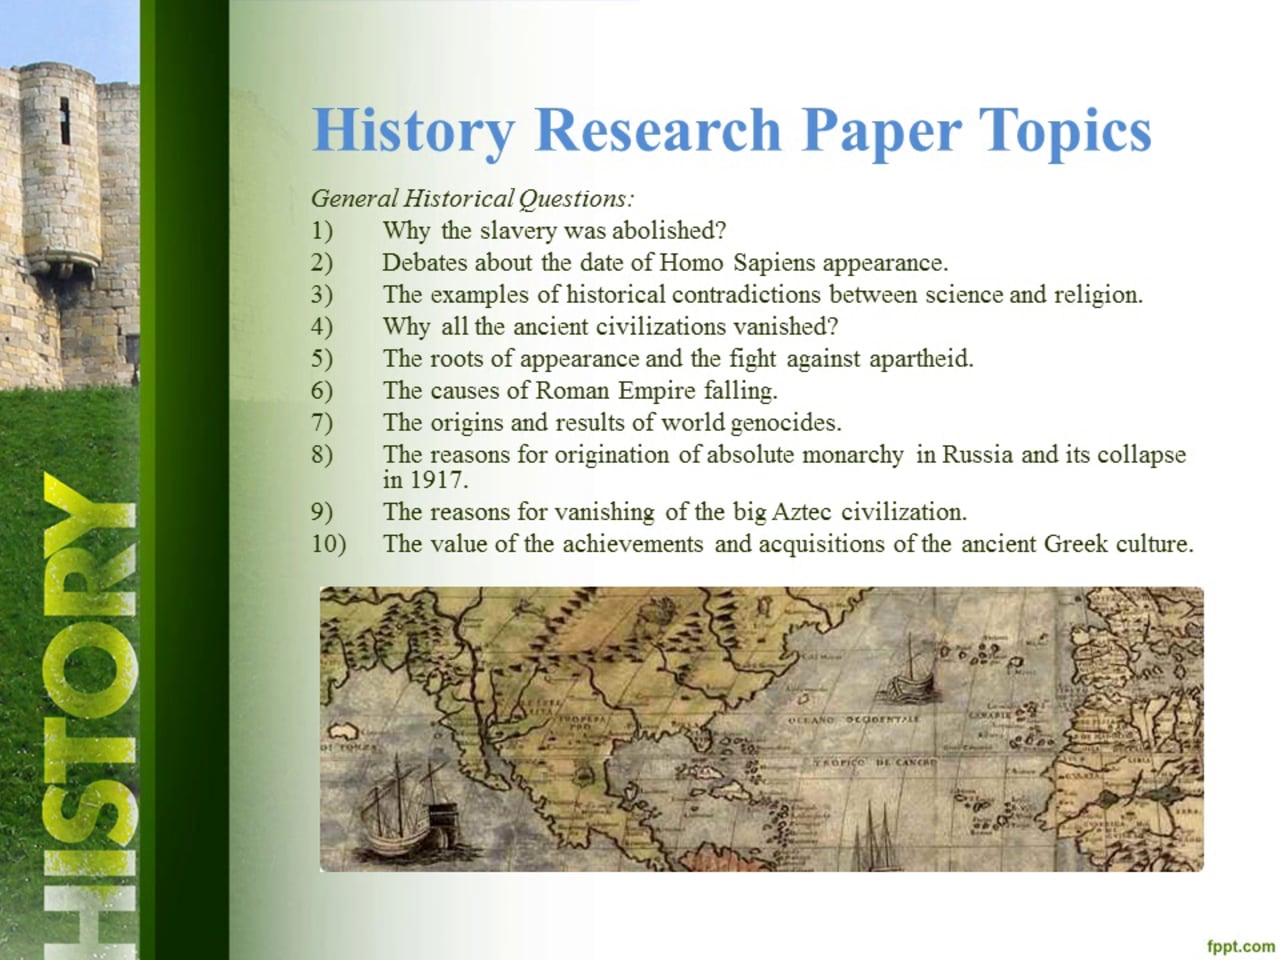 006 American History Research Paper Topics For College Students 530442879 1280x960 Exceptional World Full